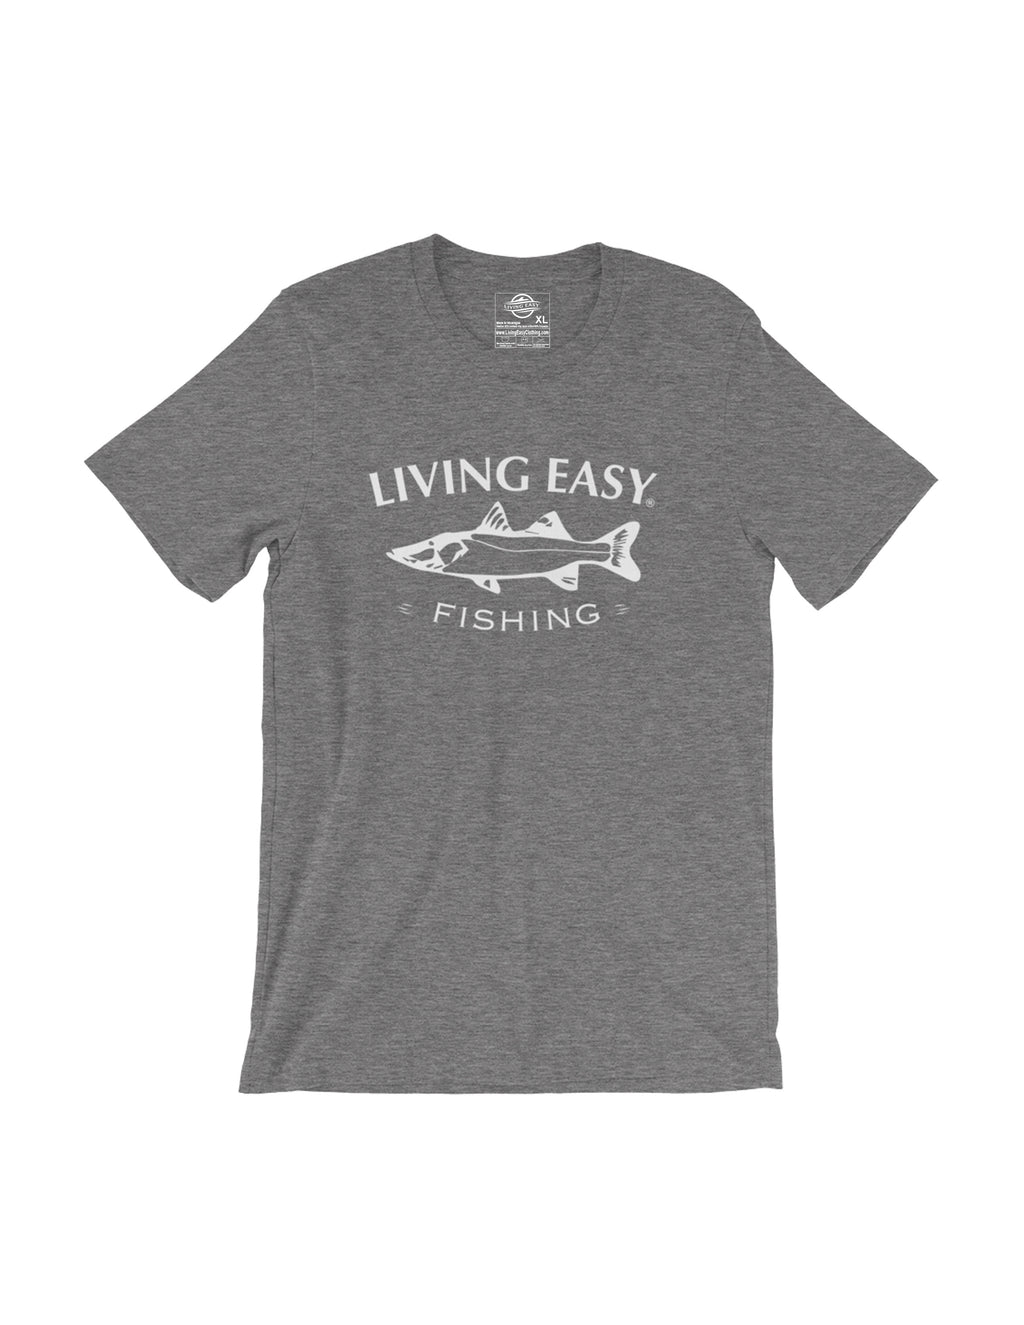 Living Easy Snook Fishing Tee